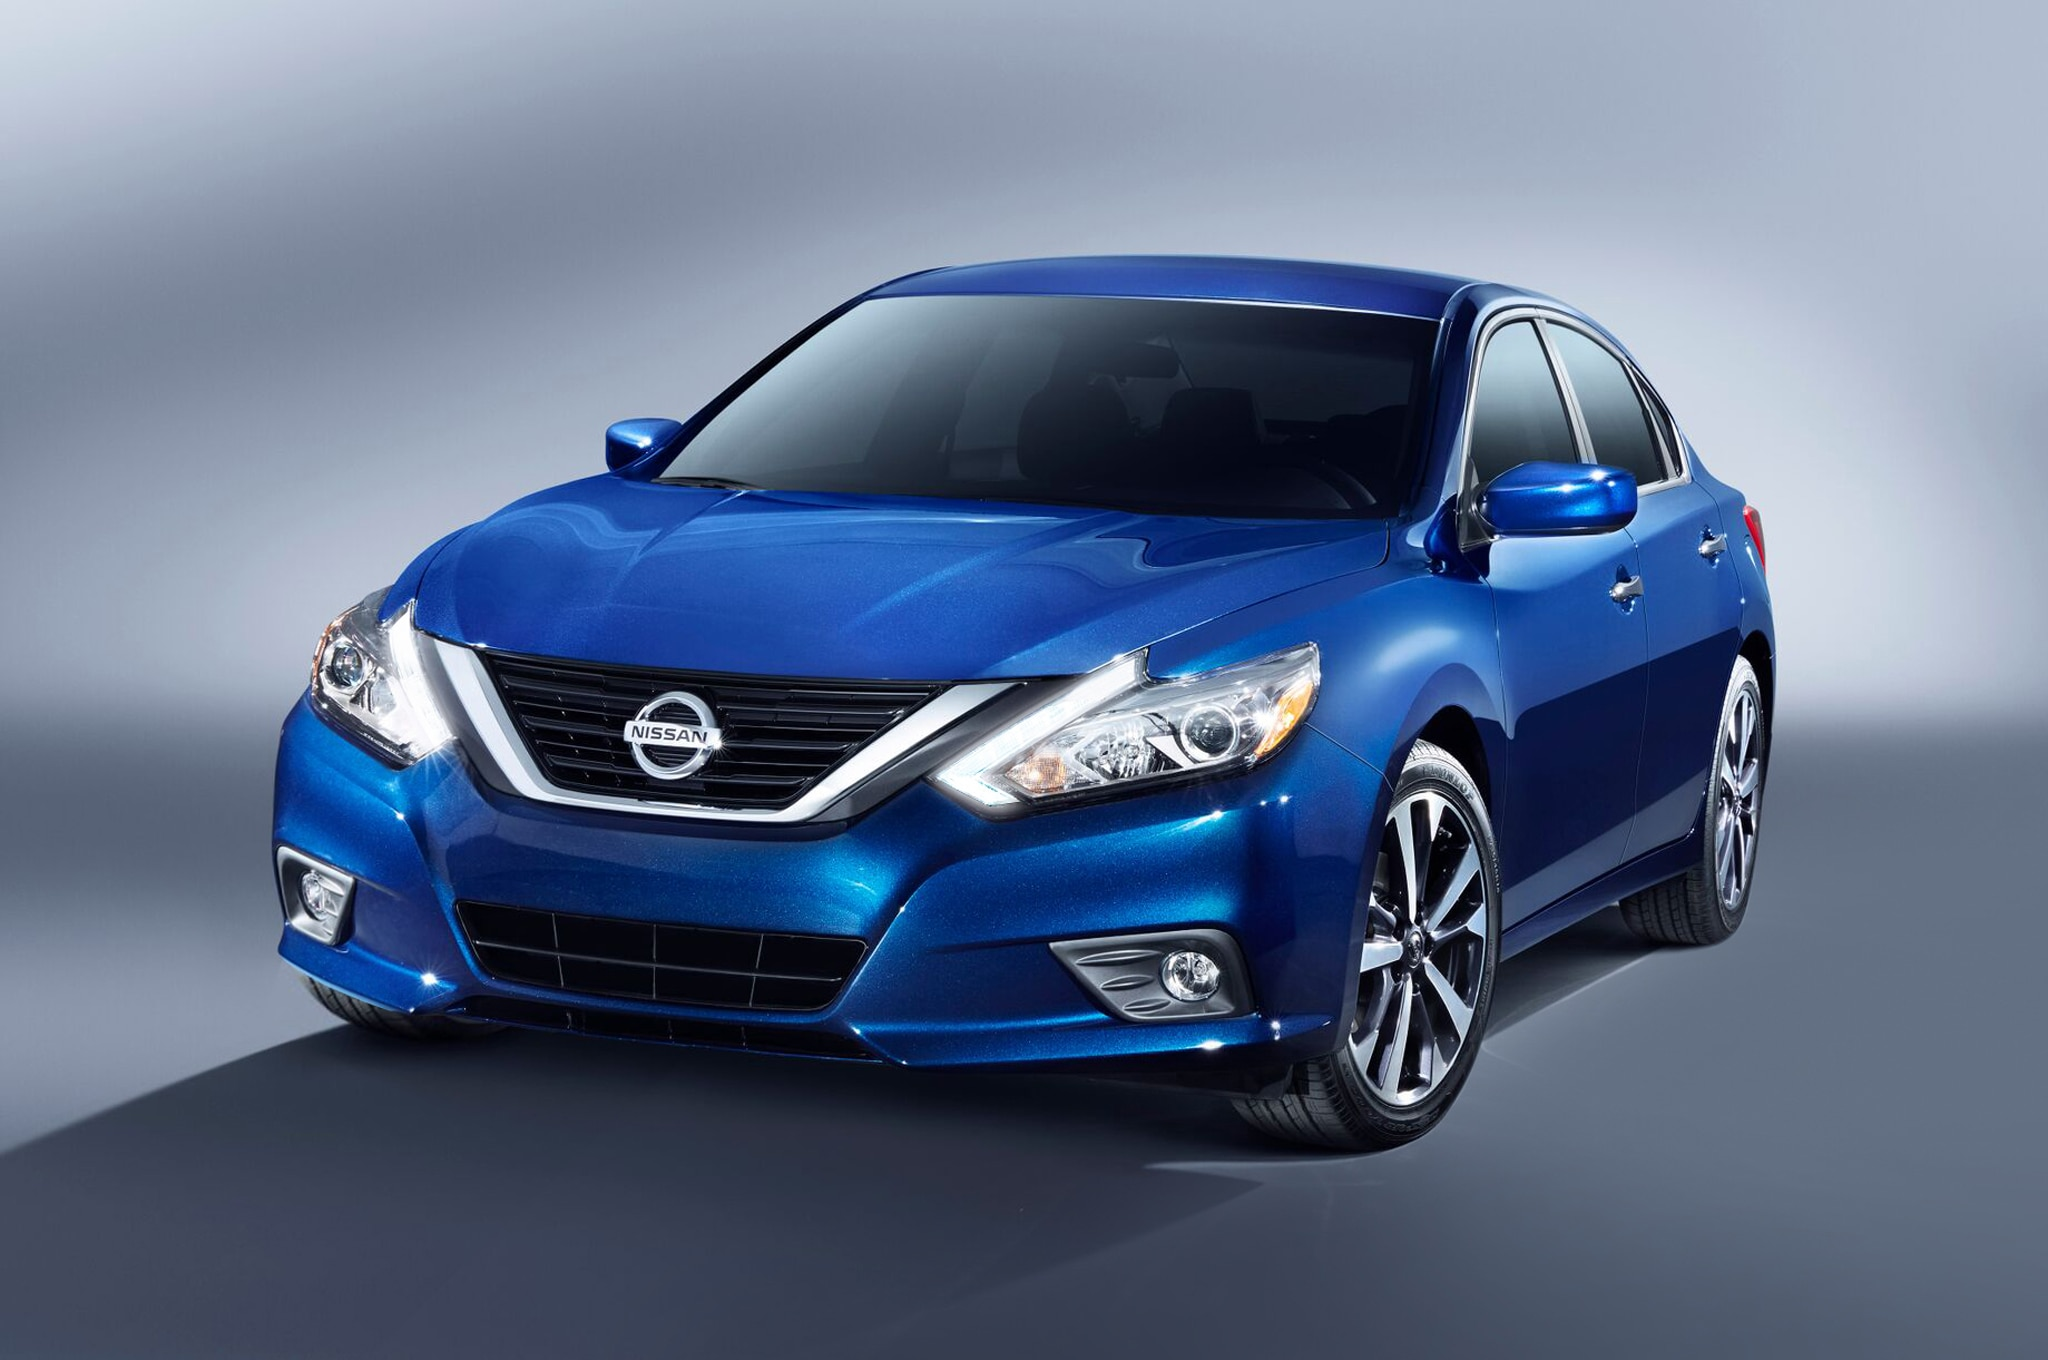 2016 nissan altima updated with maxima like design improved mpg auto breaking news. Black Bedroom Furniture Sets. Home Design Ideas